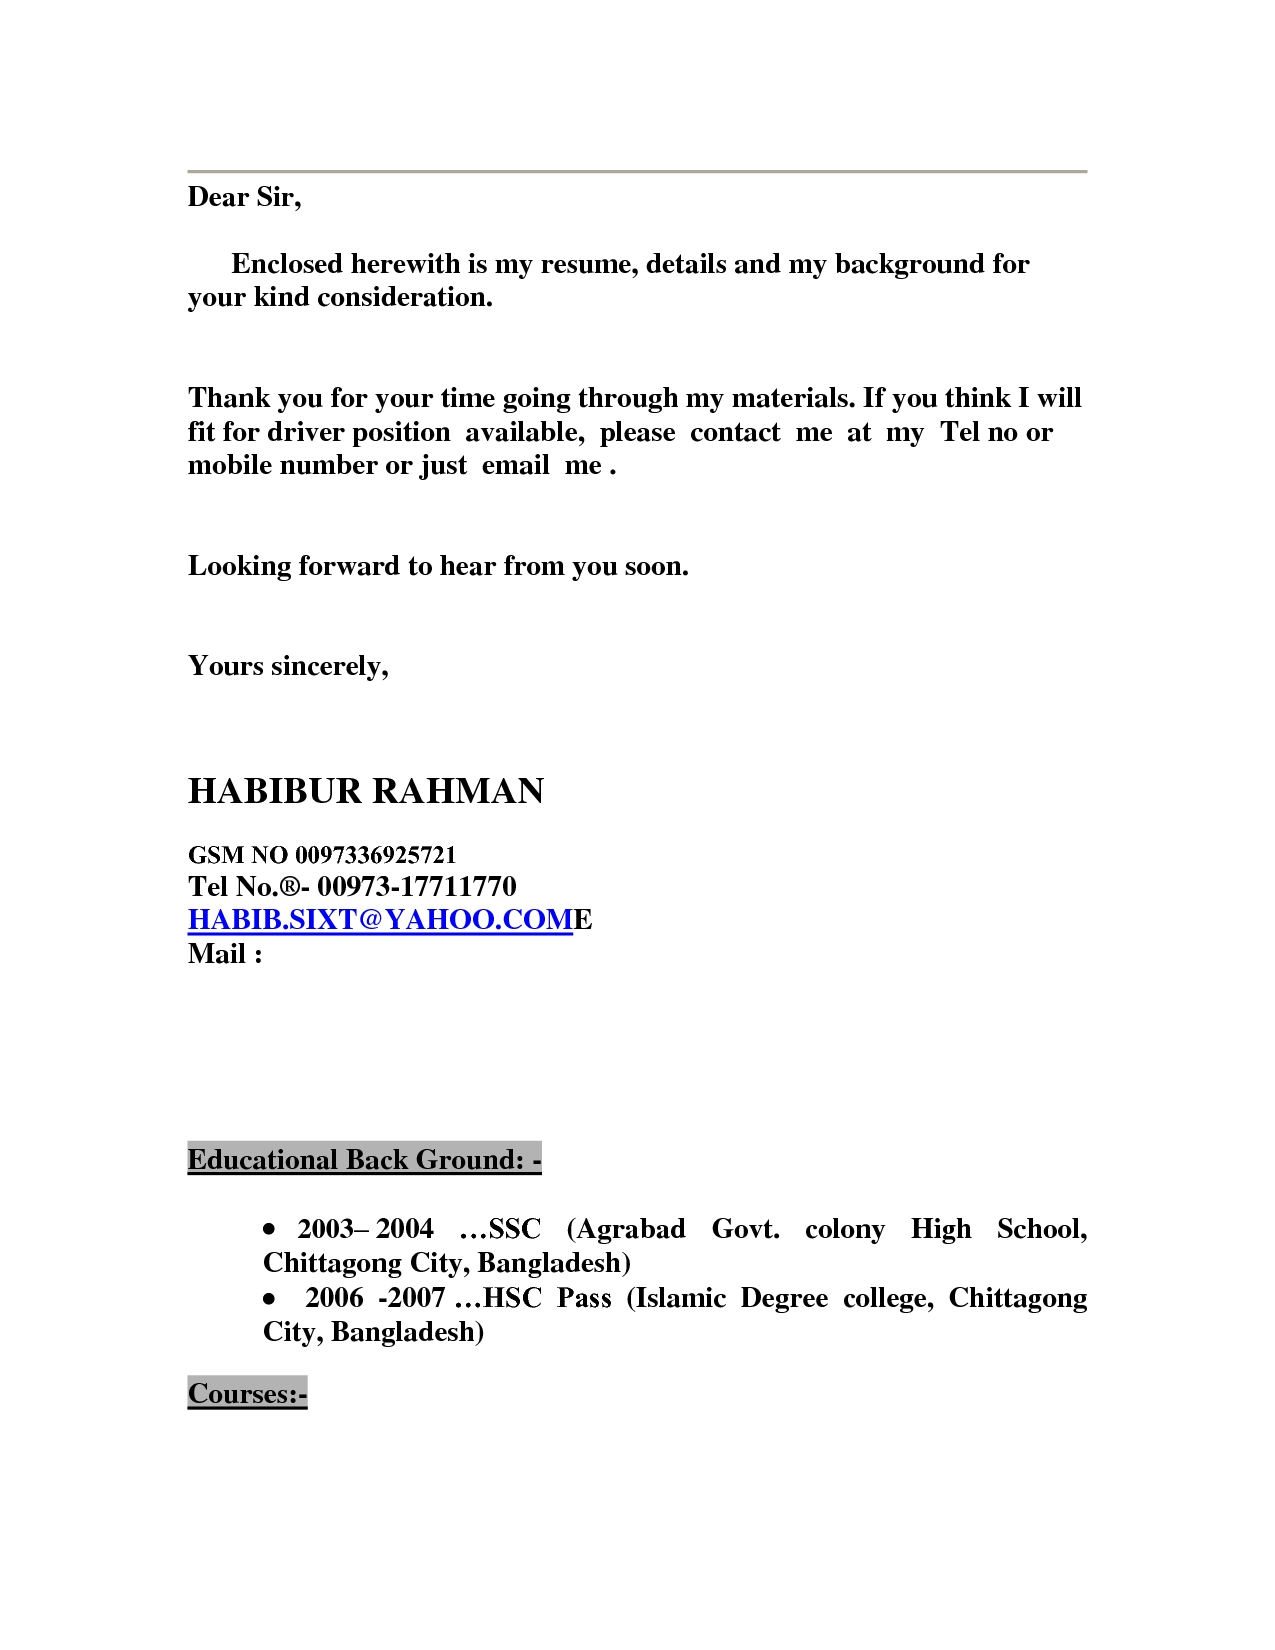 I Send You My Resume Please Find Enclosed Invoice Invoice Template Ideas